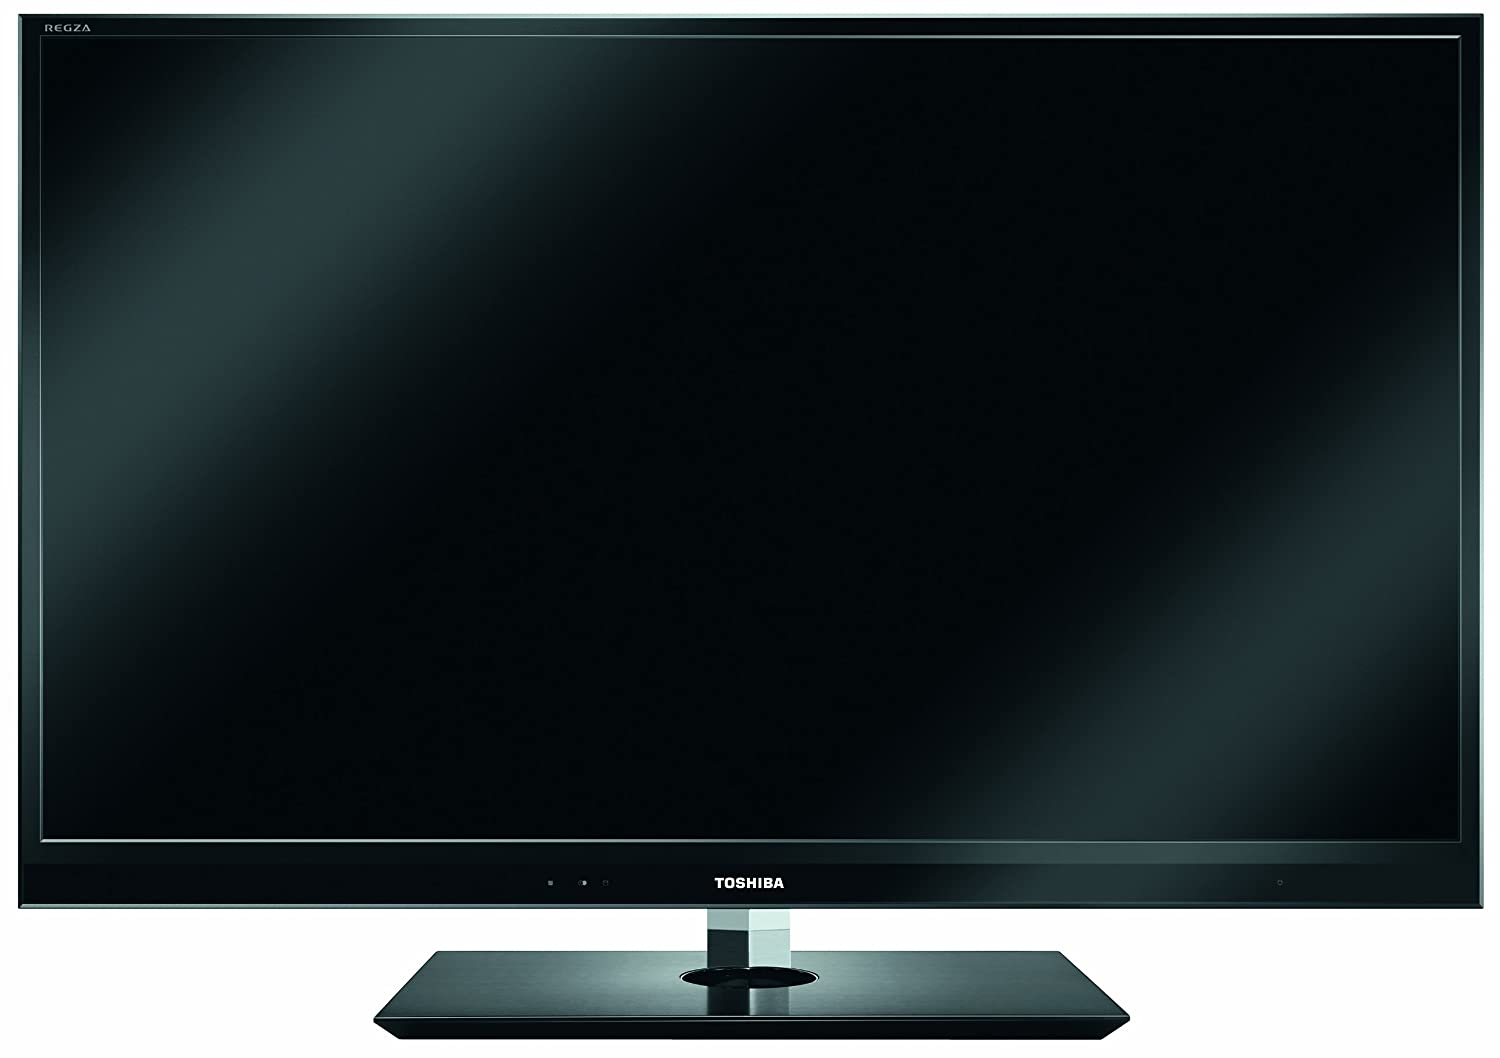 toshiba 46wl863g 116 8 cm 46 zoll 3d 1080p hd led lcd internet tv ebay. Black Bedroom Furniture Sets. Home Design Ideas